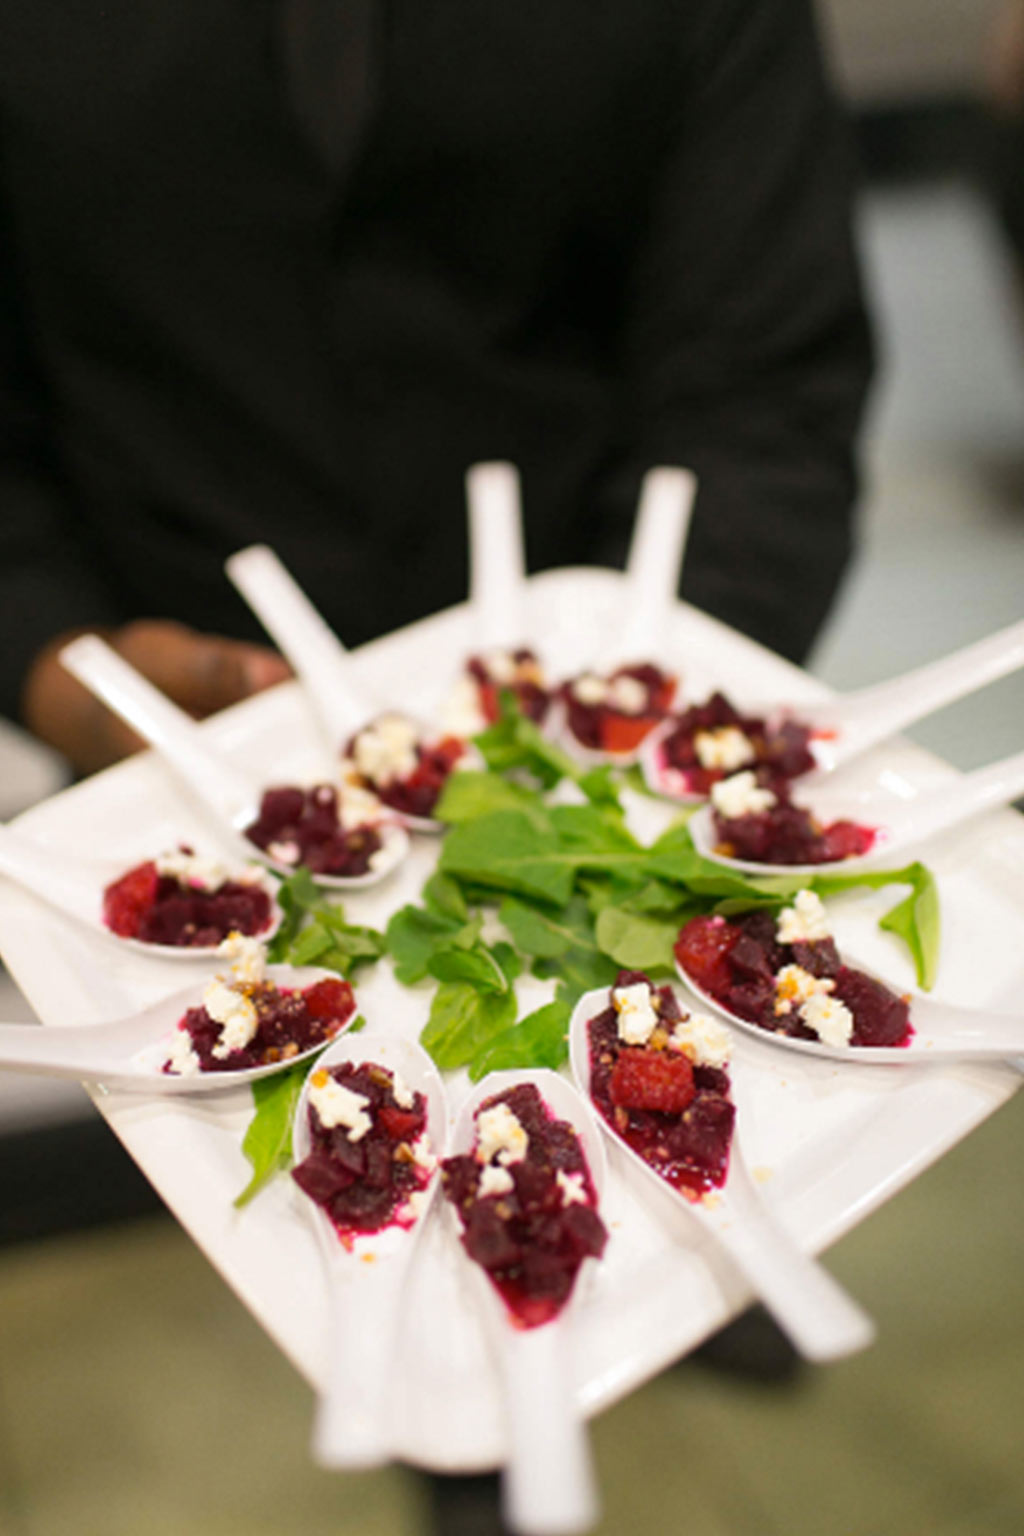 Beet spoon wedding reception hors d'oeuvres by Bolsa Catering